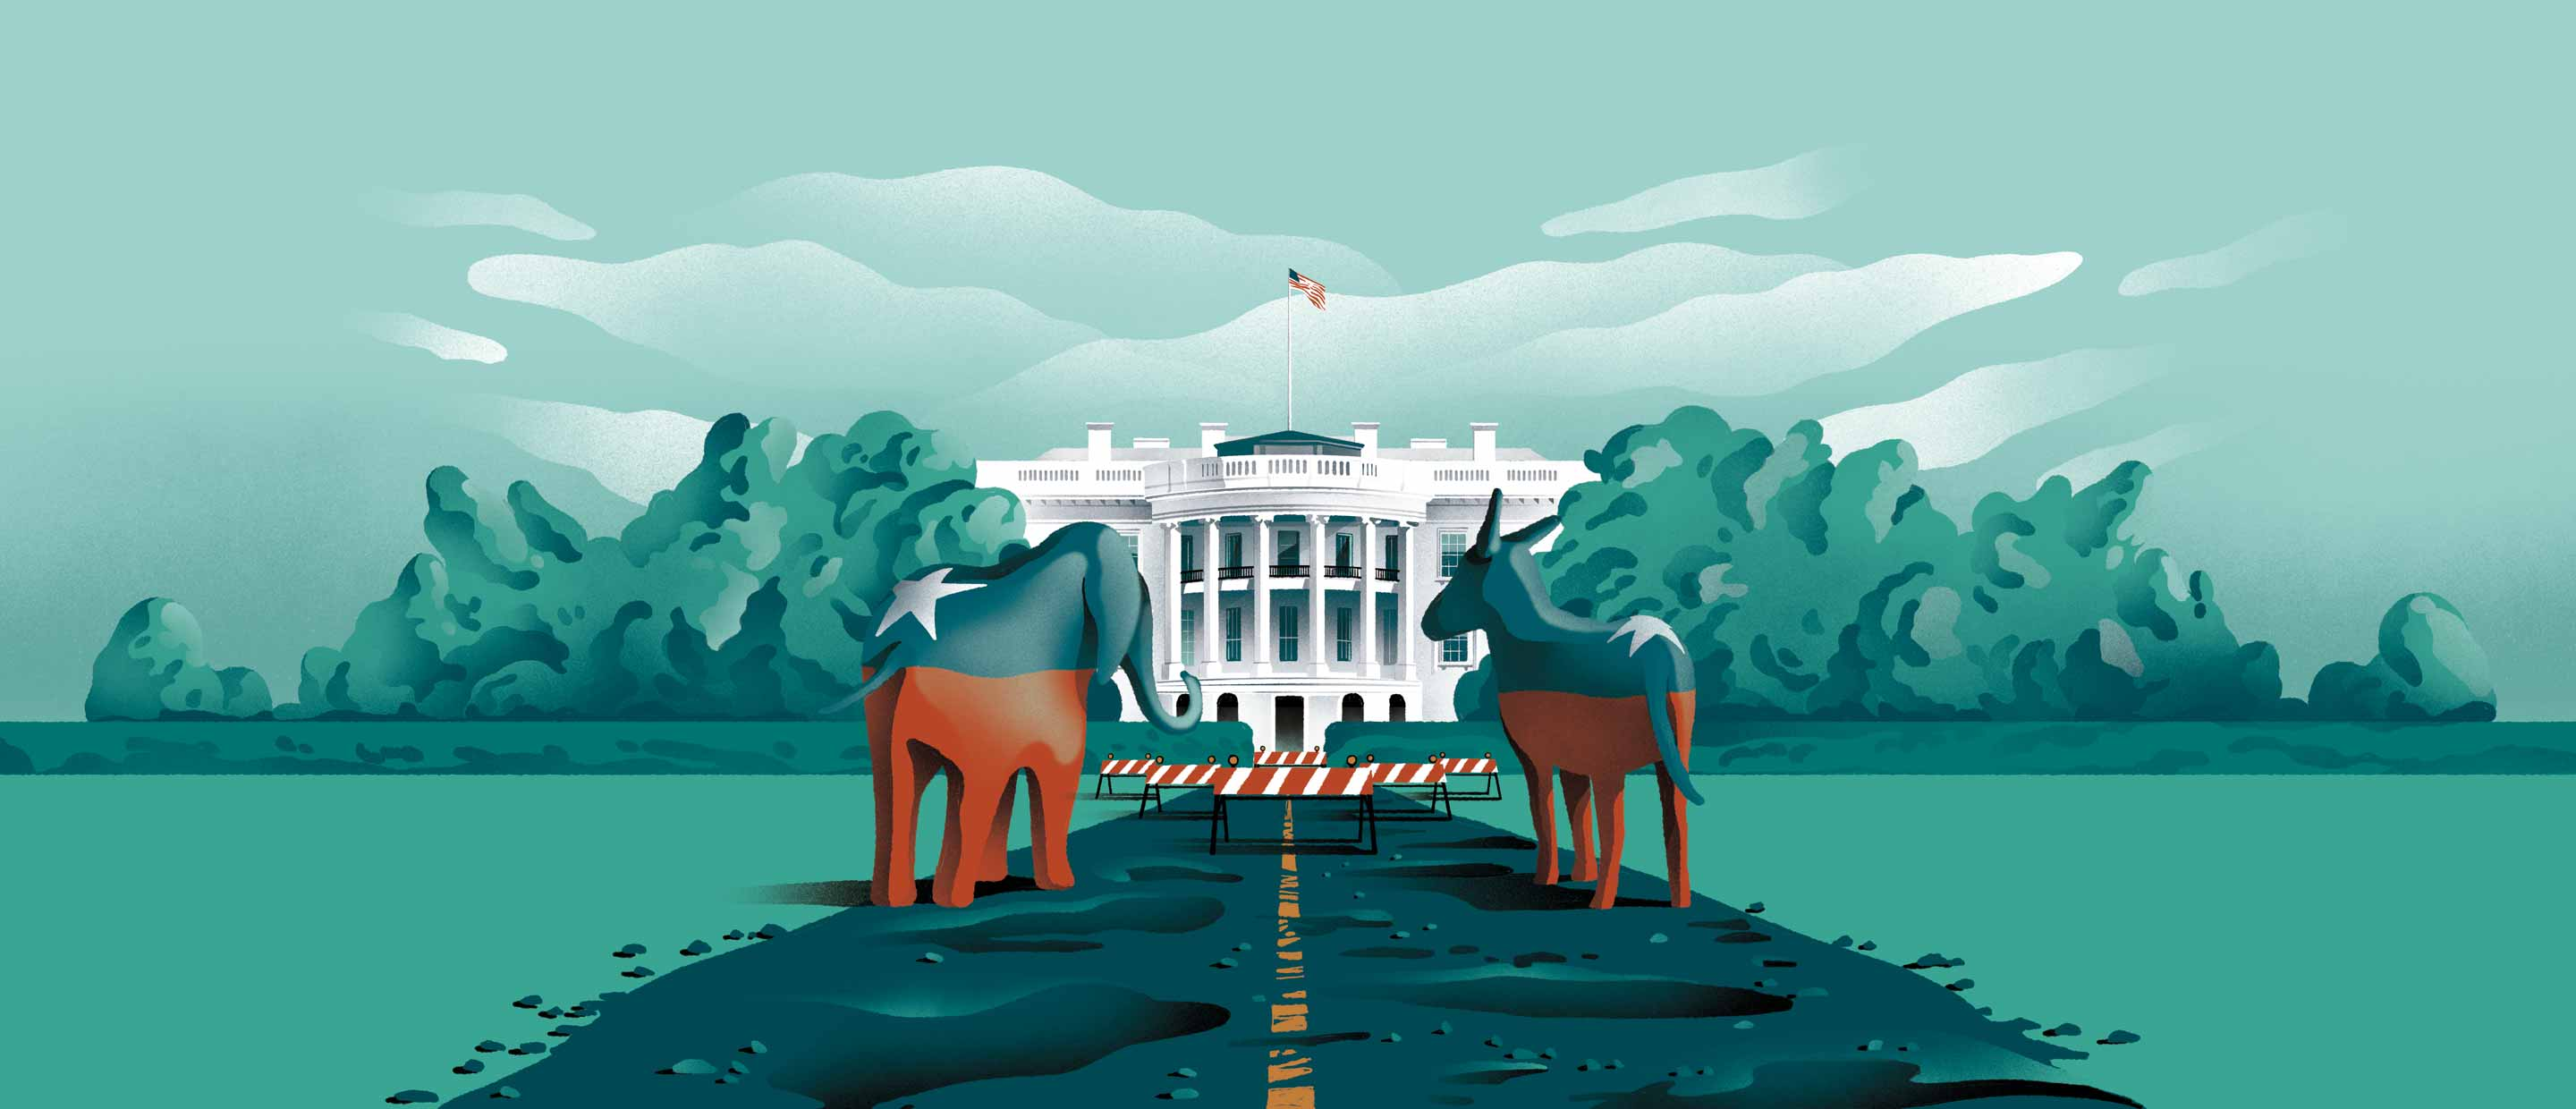 U.S. 2020 elections: Policy and portfolio implications